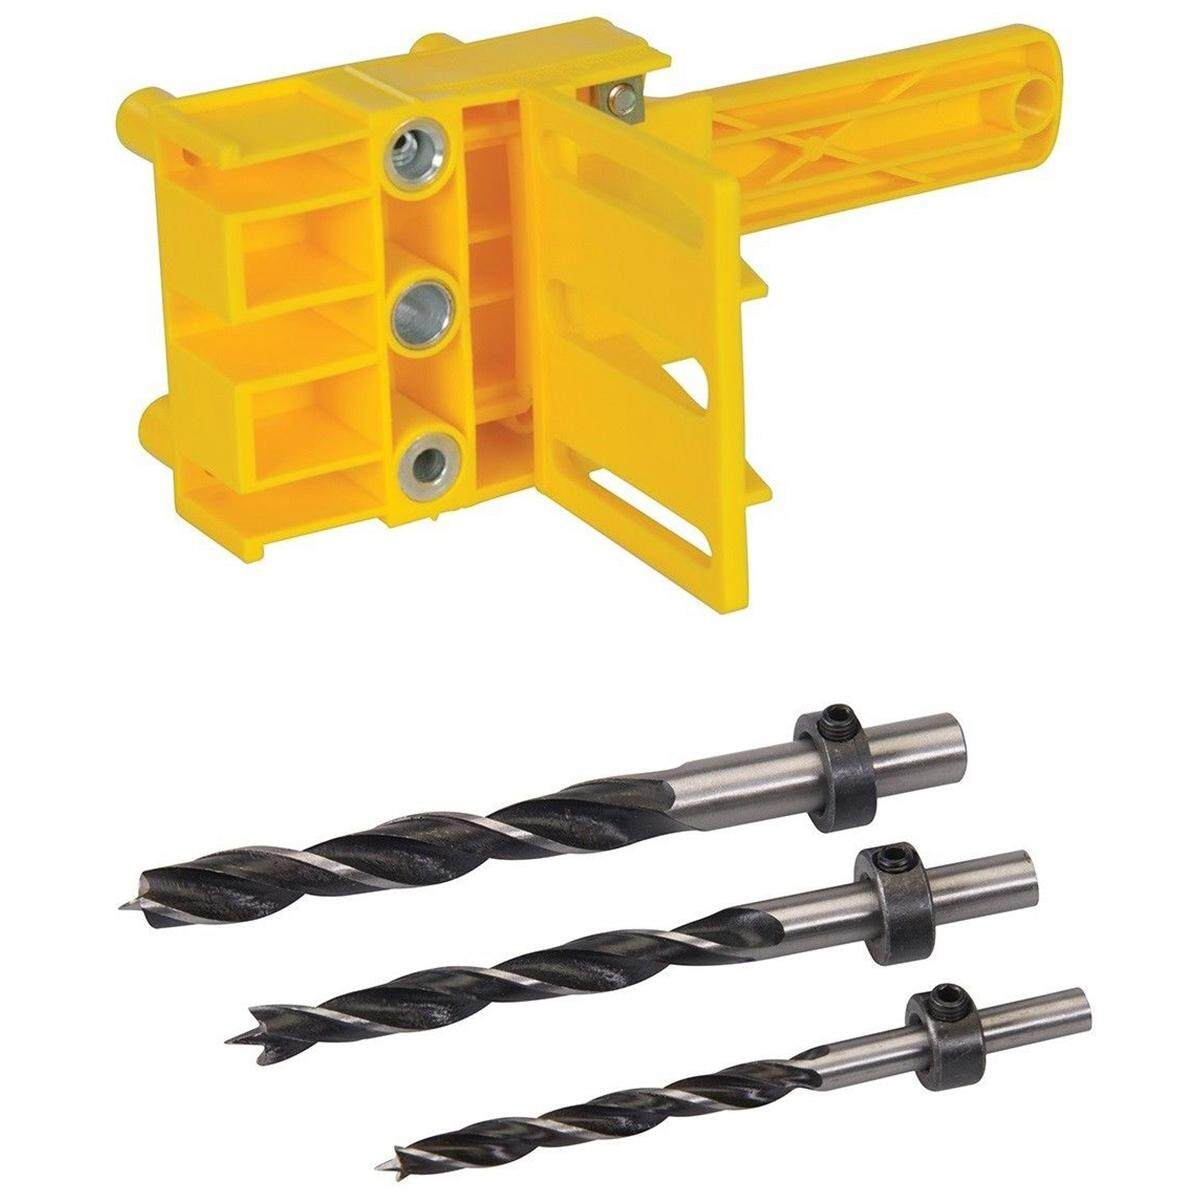 Dowel Drill Set For Pocket Hole Jig 6, 8 & 10Mm Carpenters Joint Tool